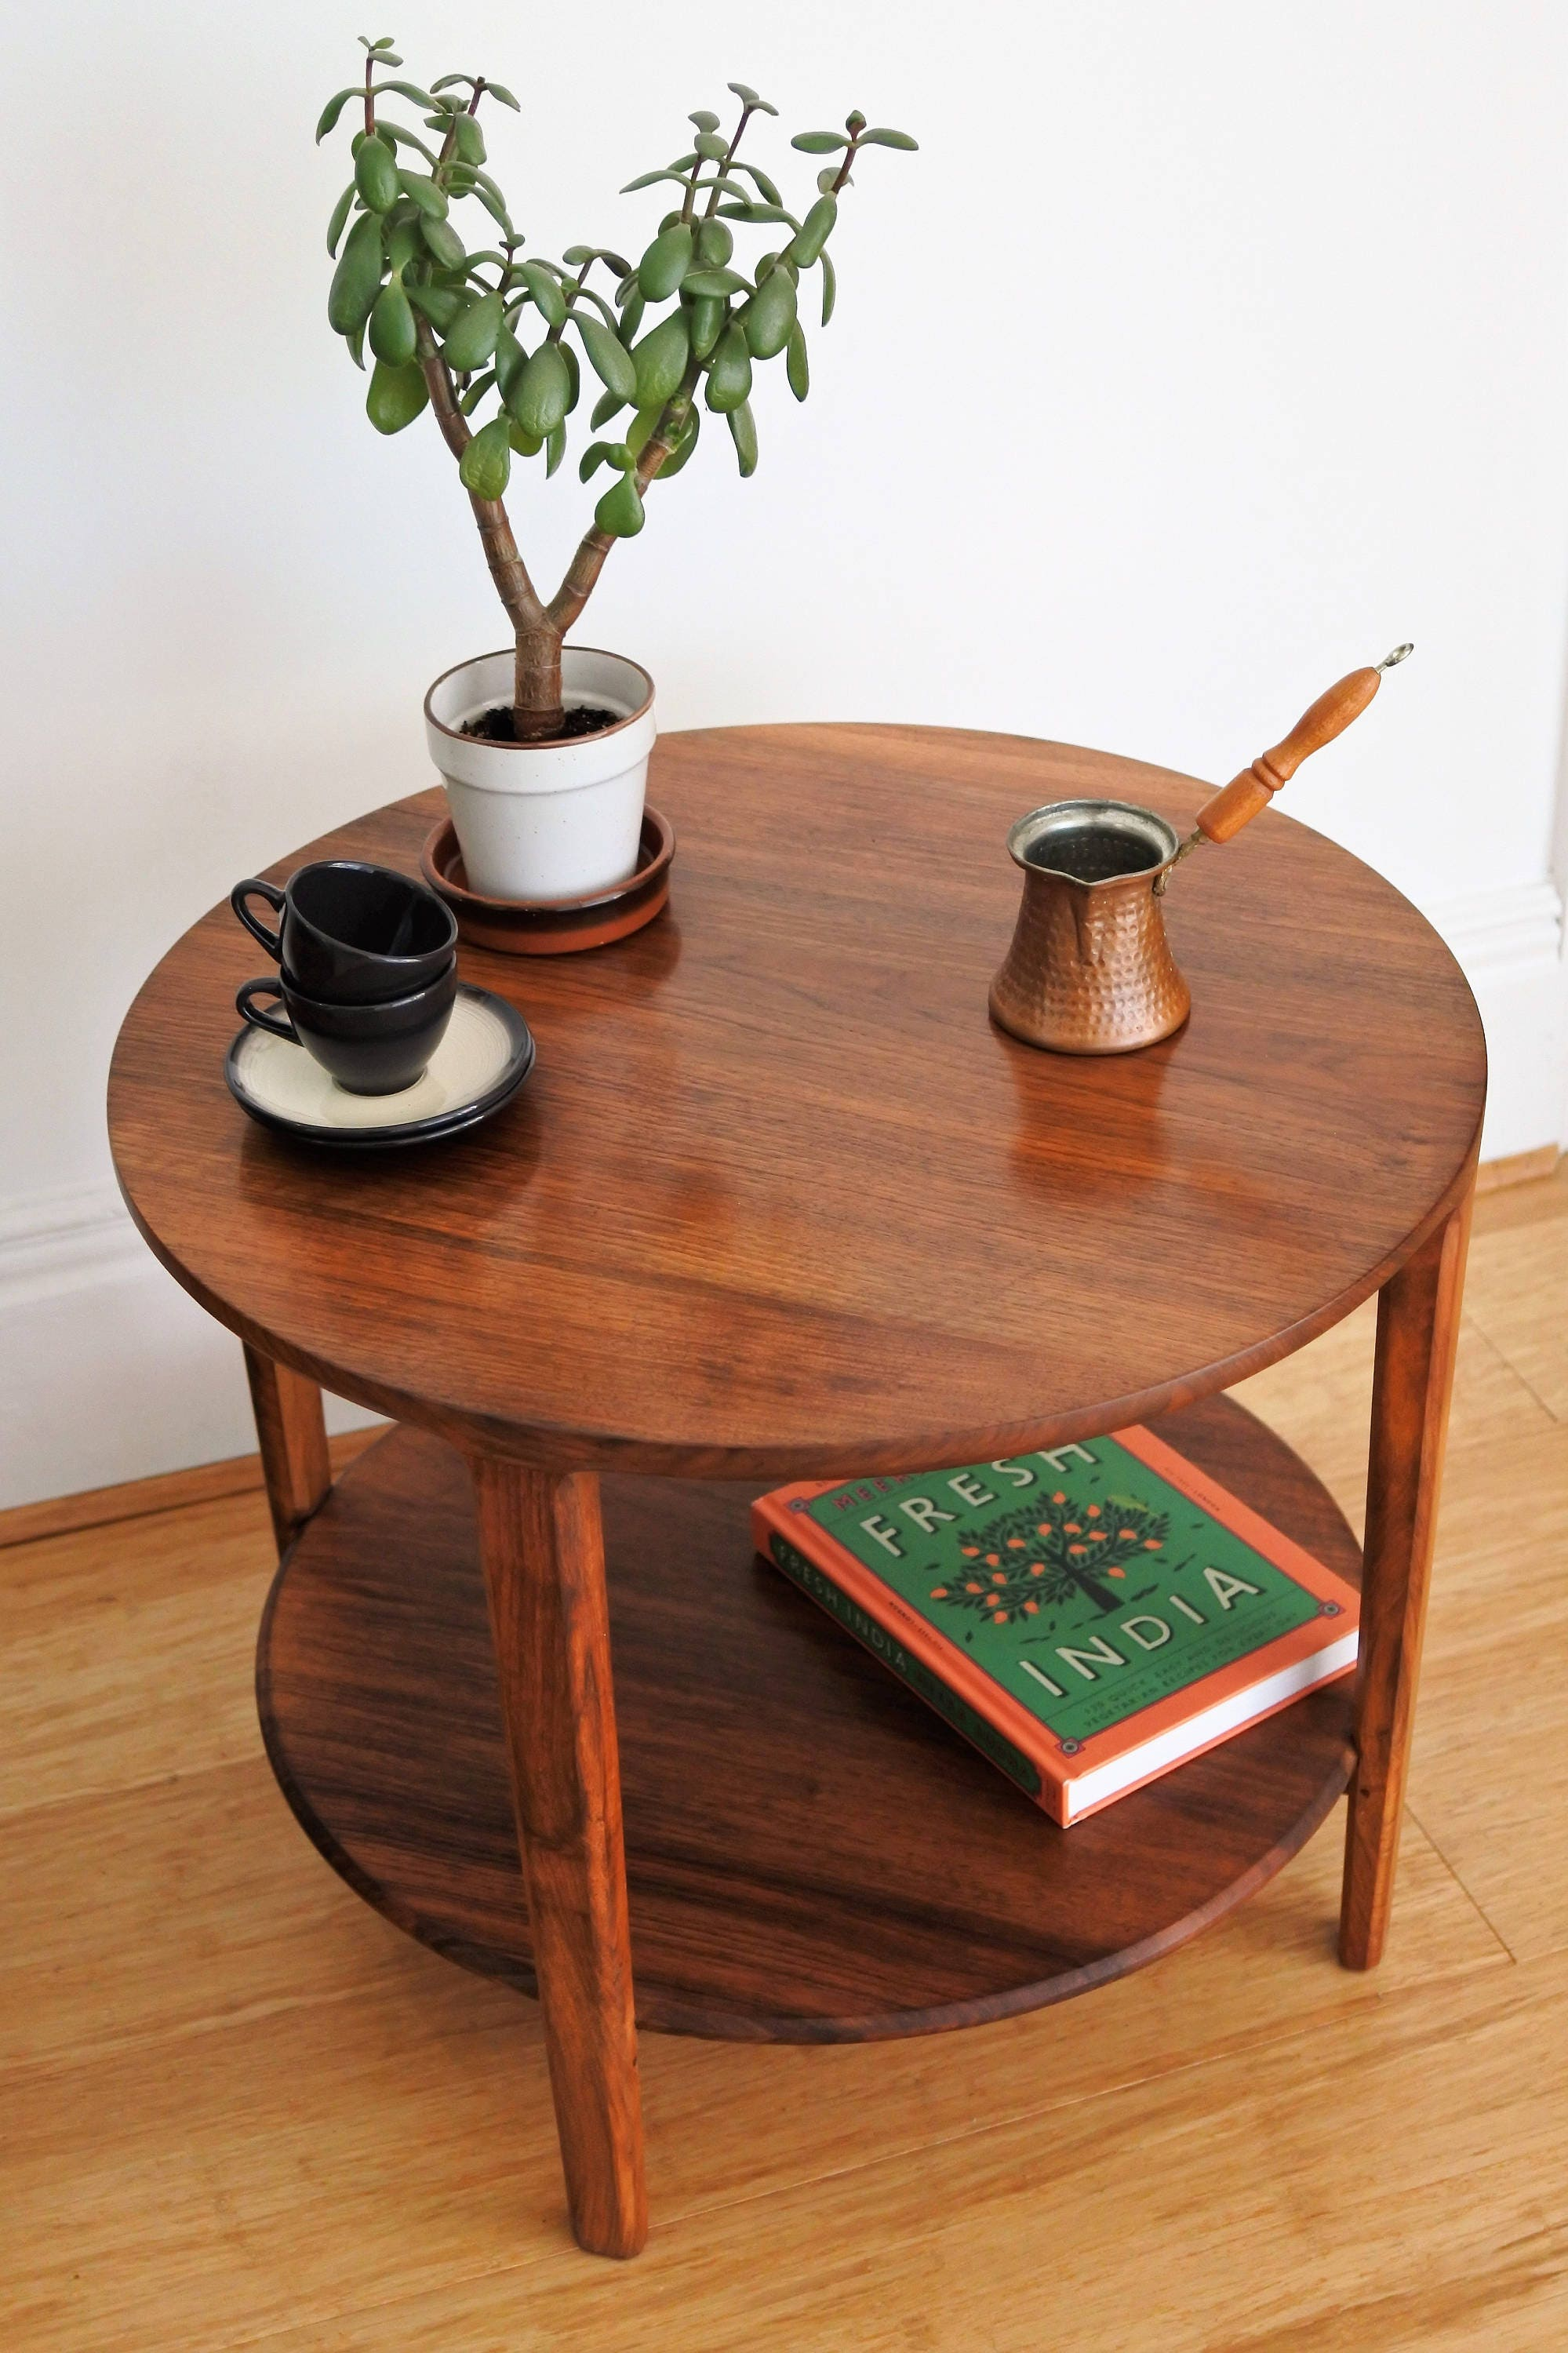 1960 Solid Teak 2 Tier Round Coffee Table.